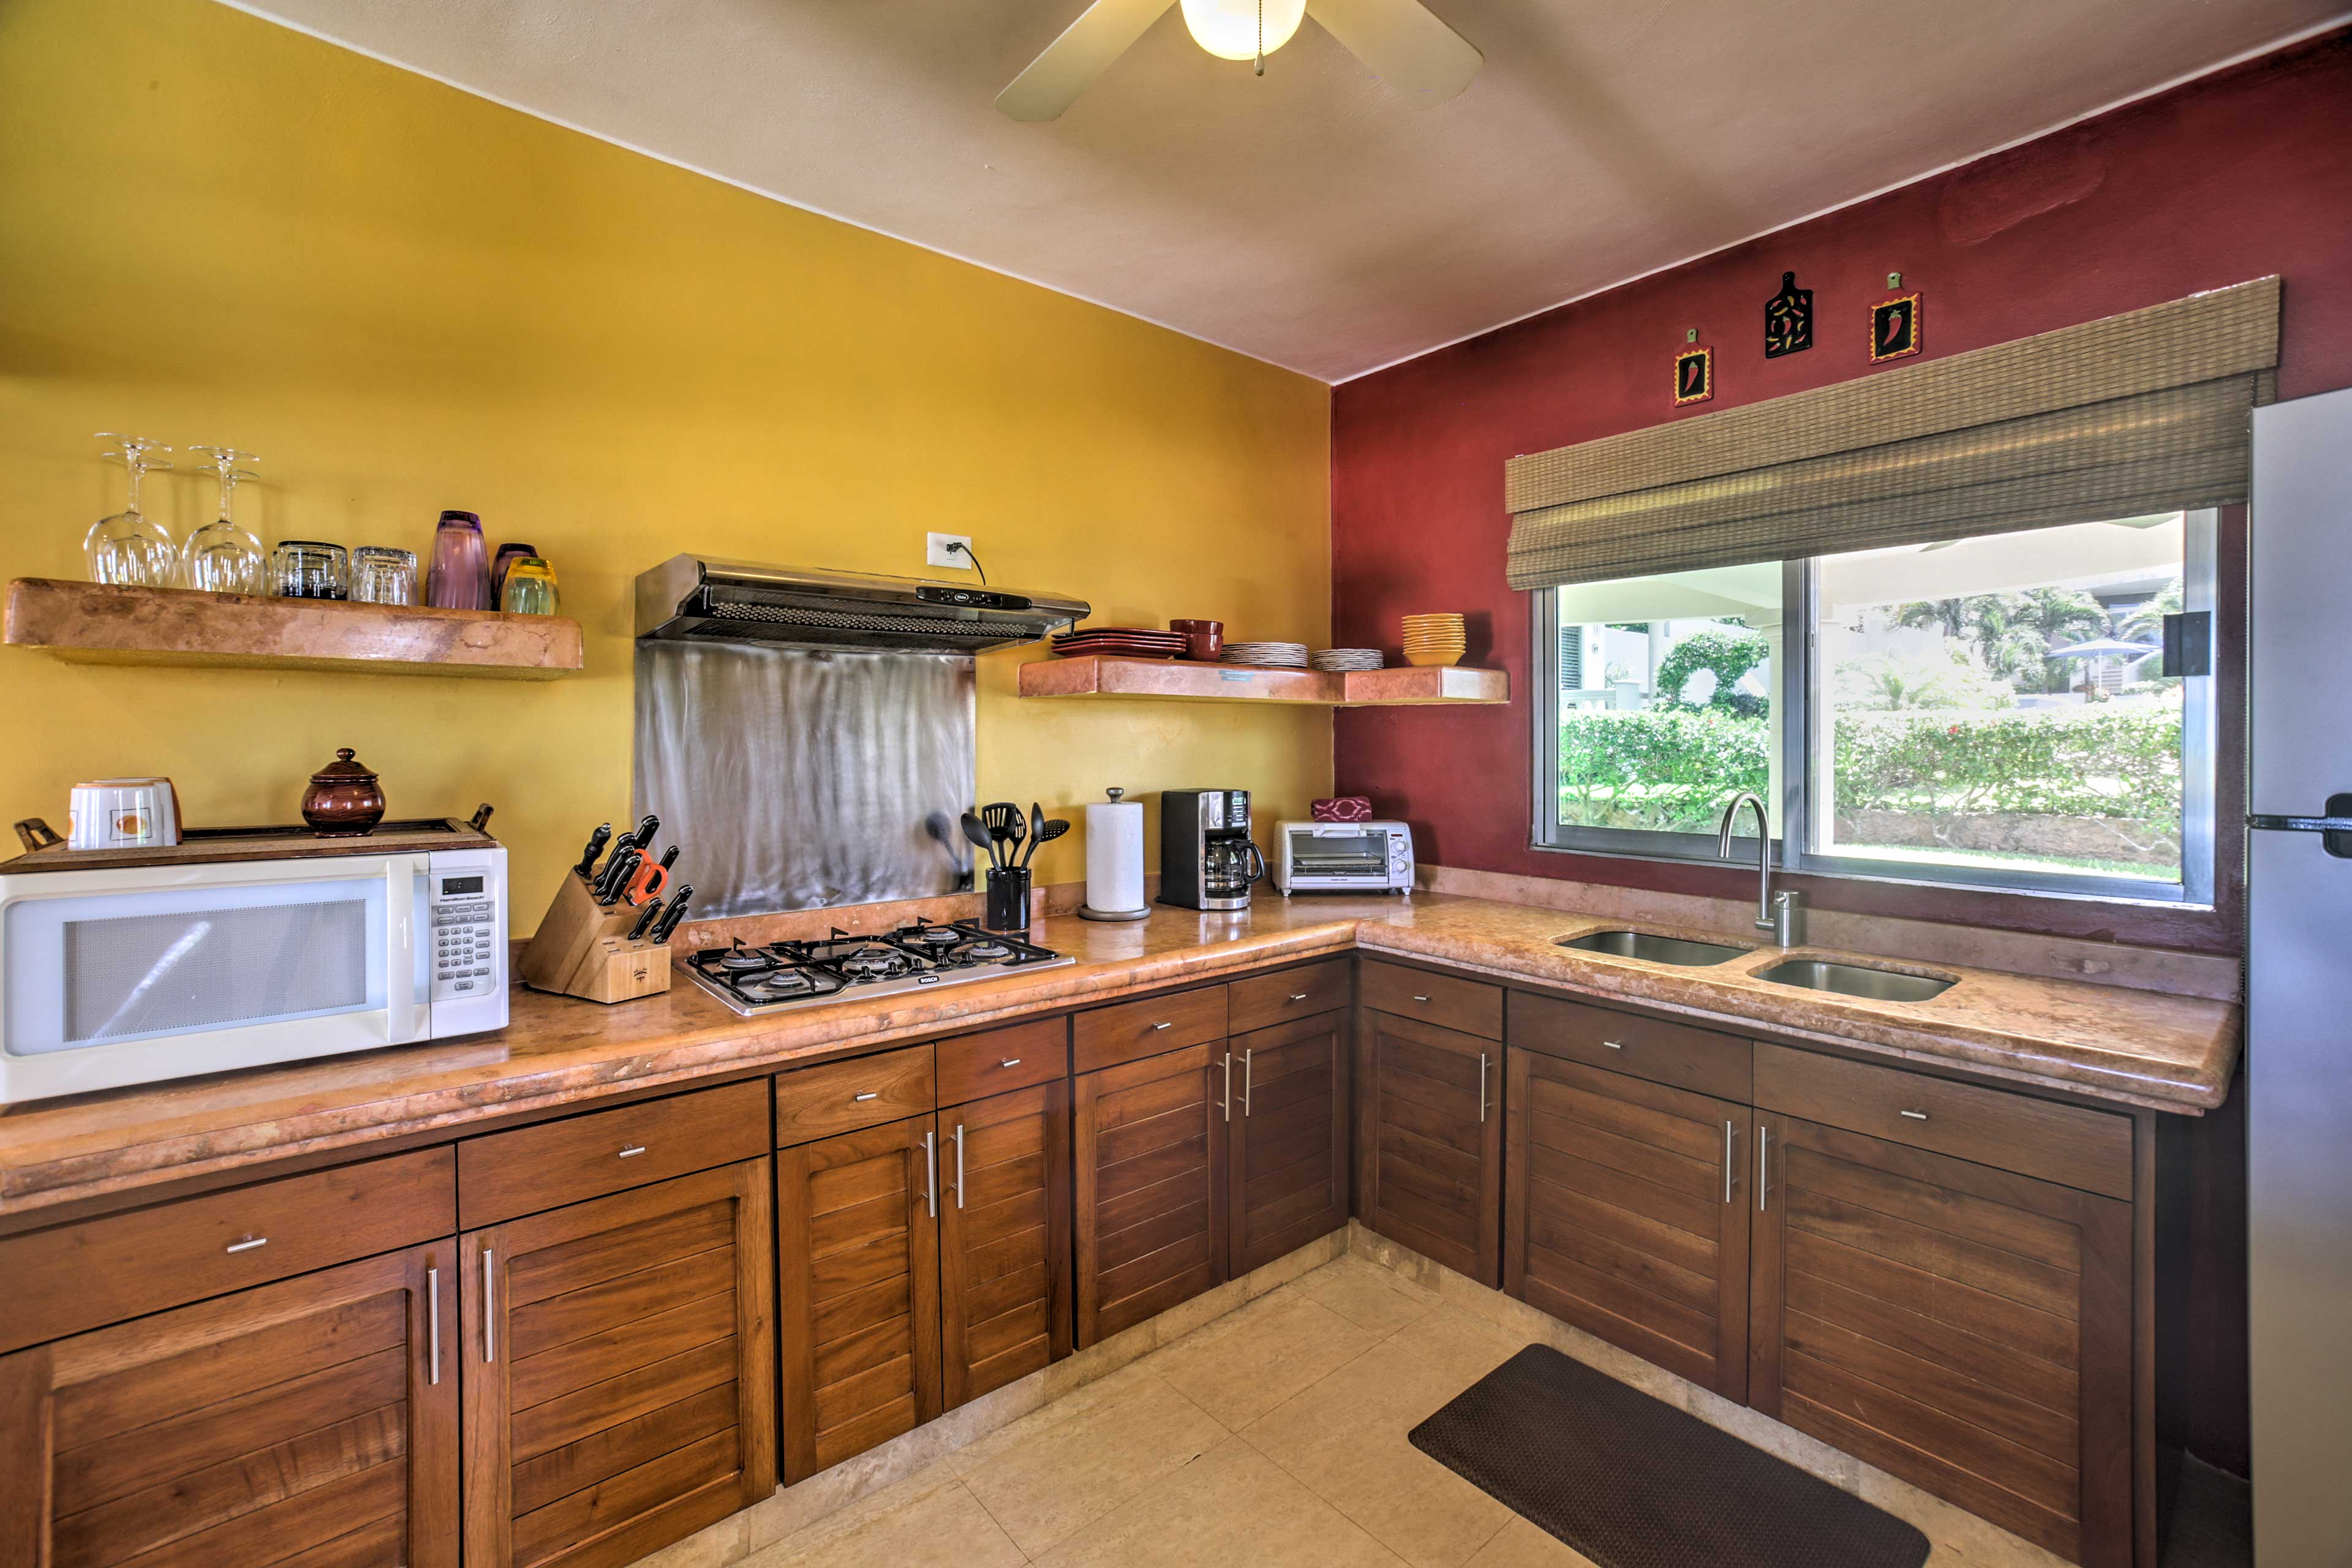 Ample counter space makes meal prep a breeze.